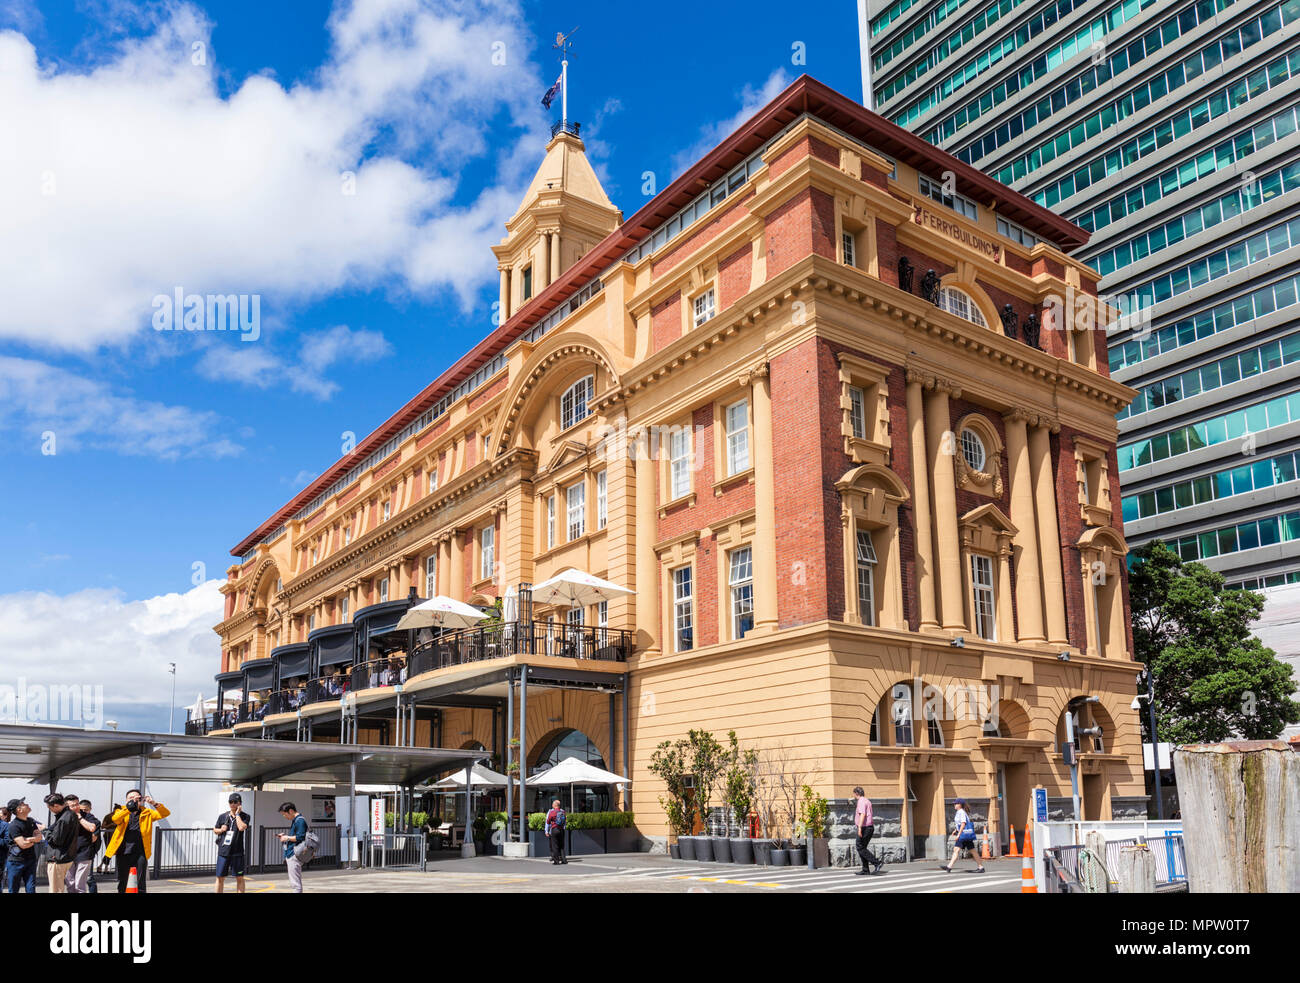 new zealand auckland new zealand north island the Ferry building Quay street Auckland waterfront new zealand north island exterior front facade - Stock Image